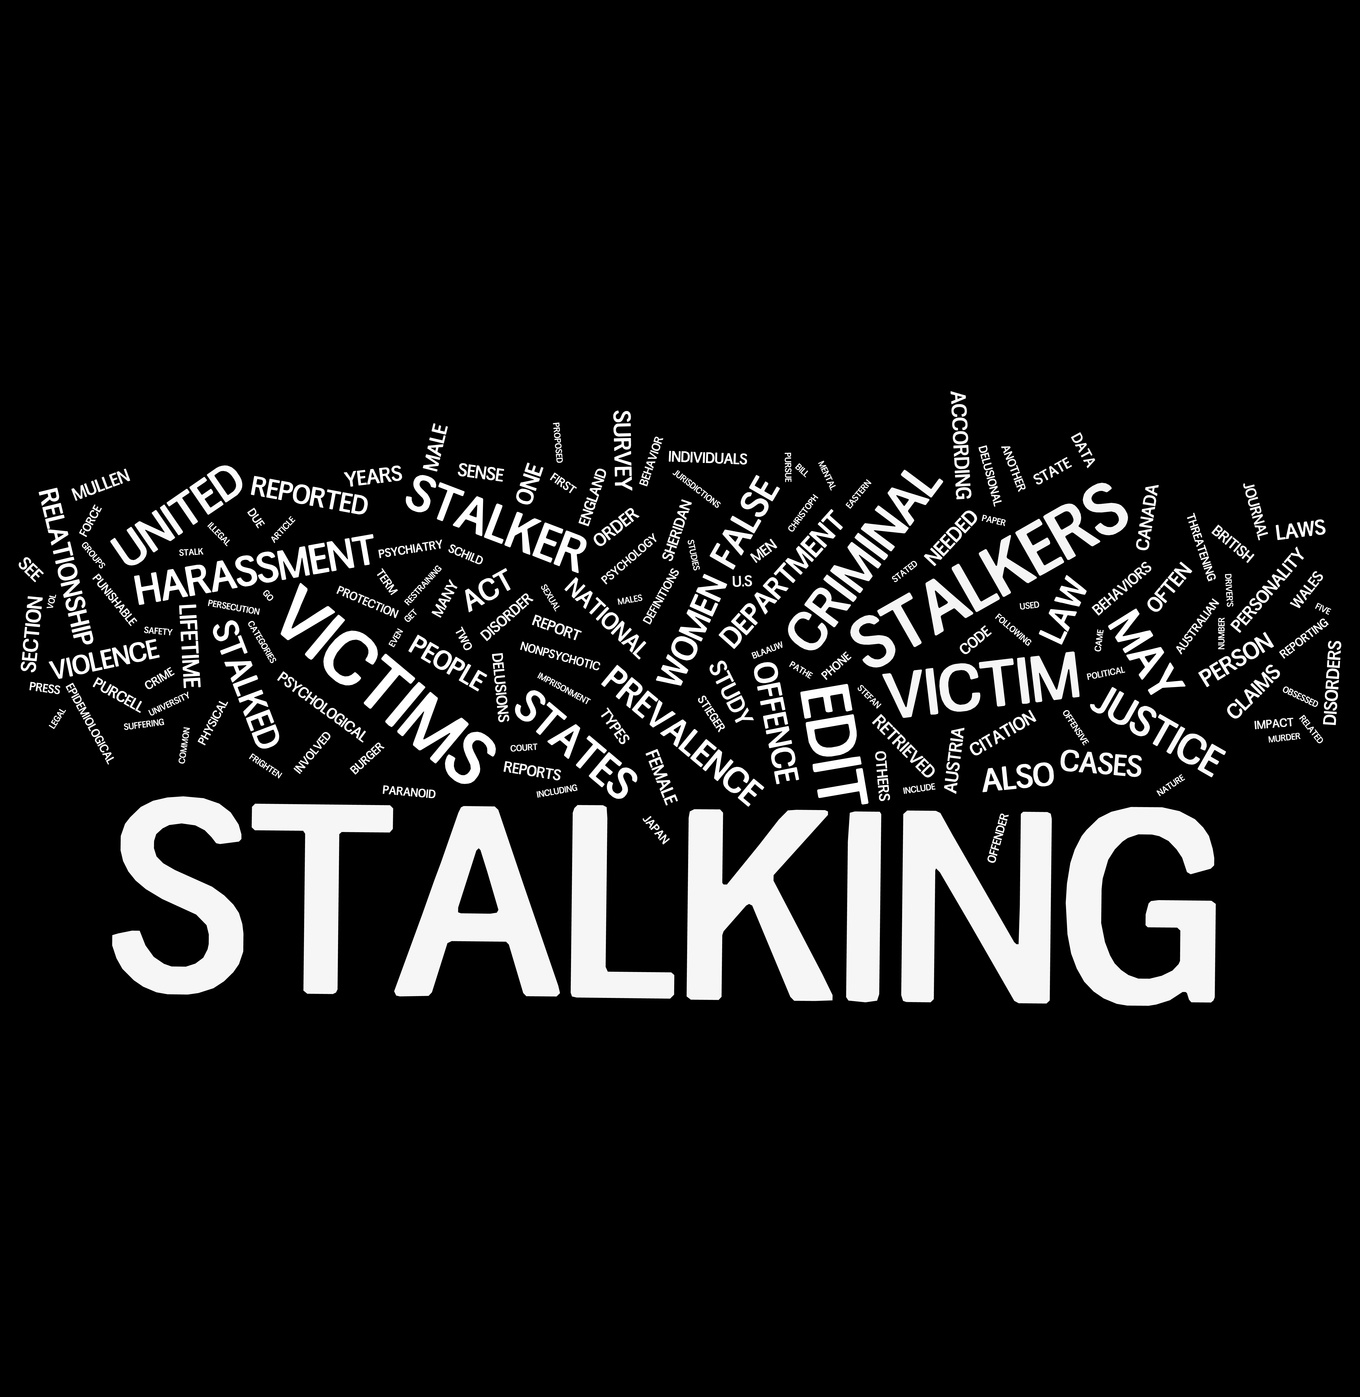 dating stalking Stalking and dating violencewe are here to help.